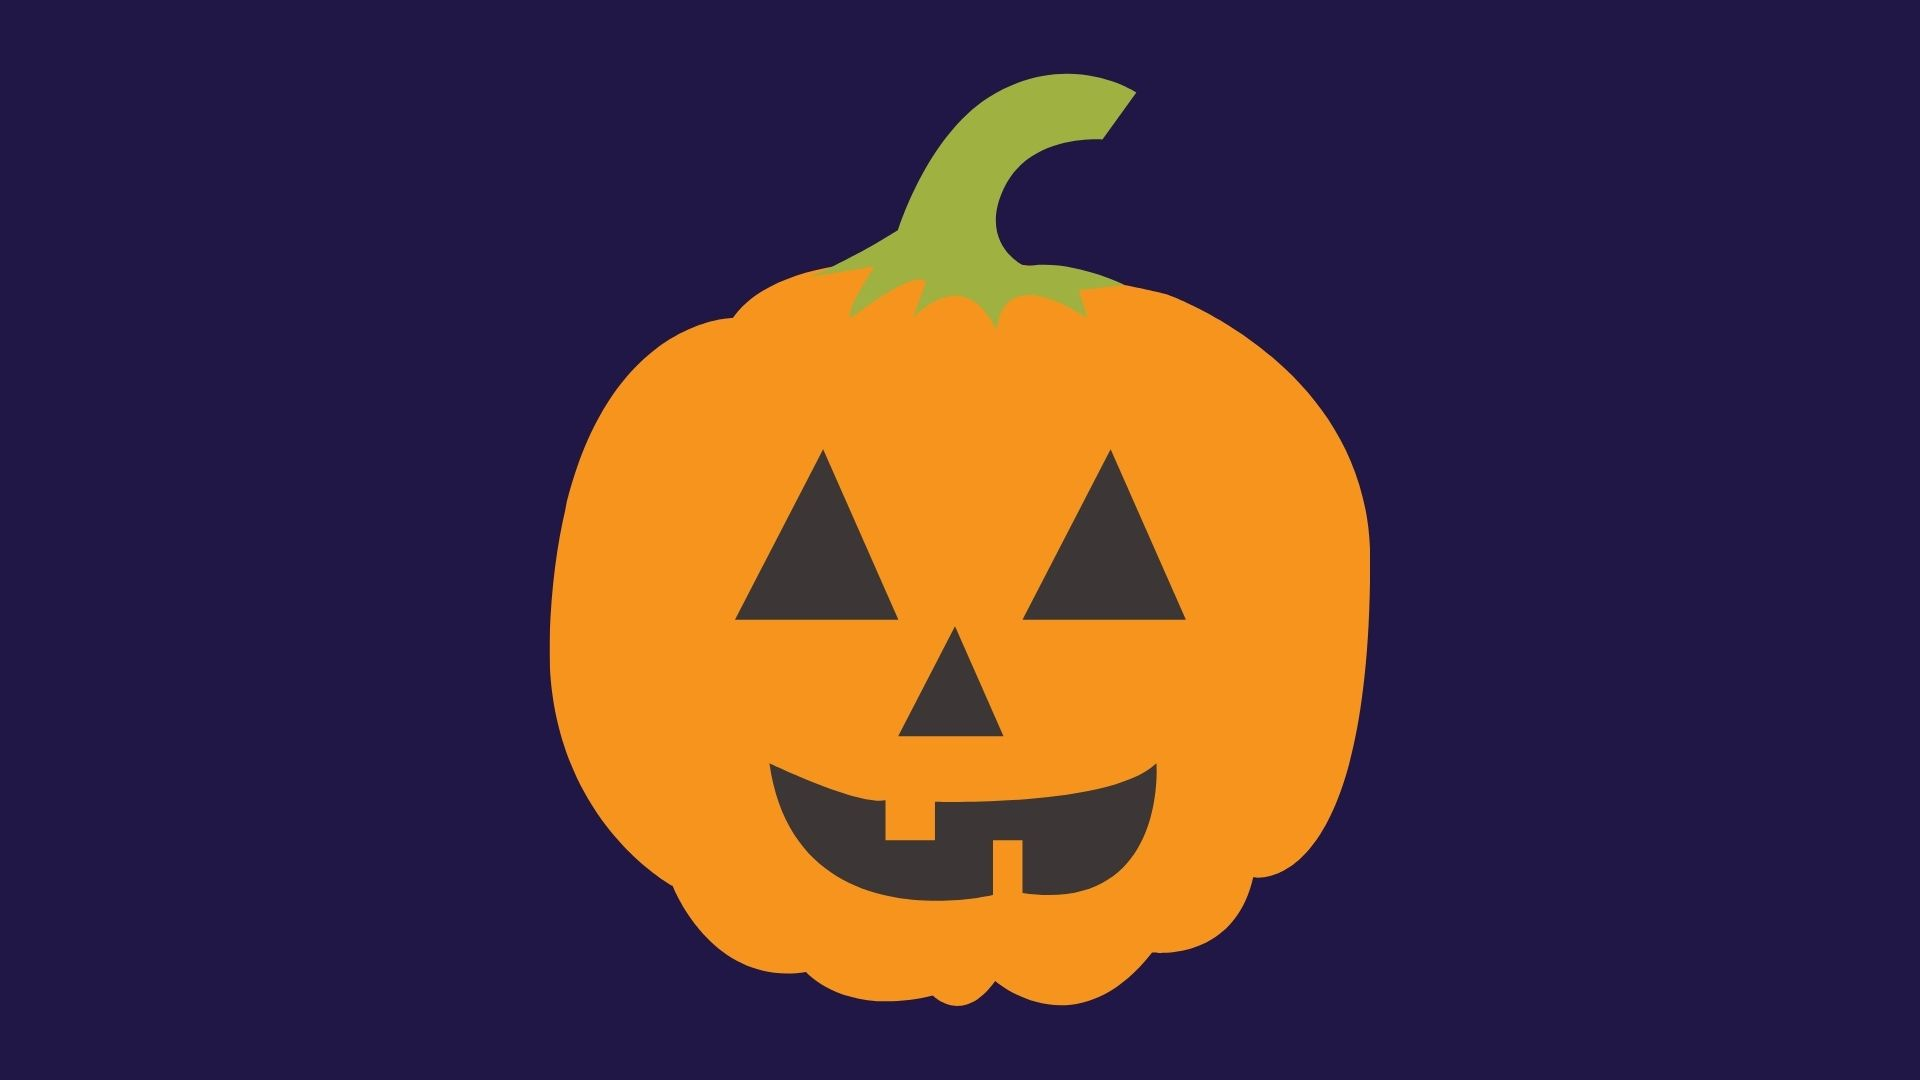 Dark blue background with an illustration of a jack-o-lantern in the foreground